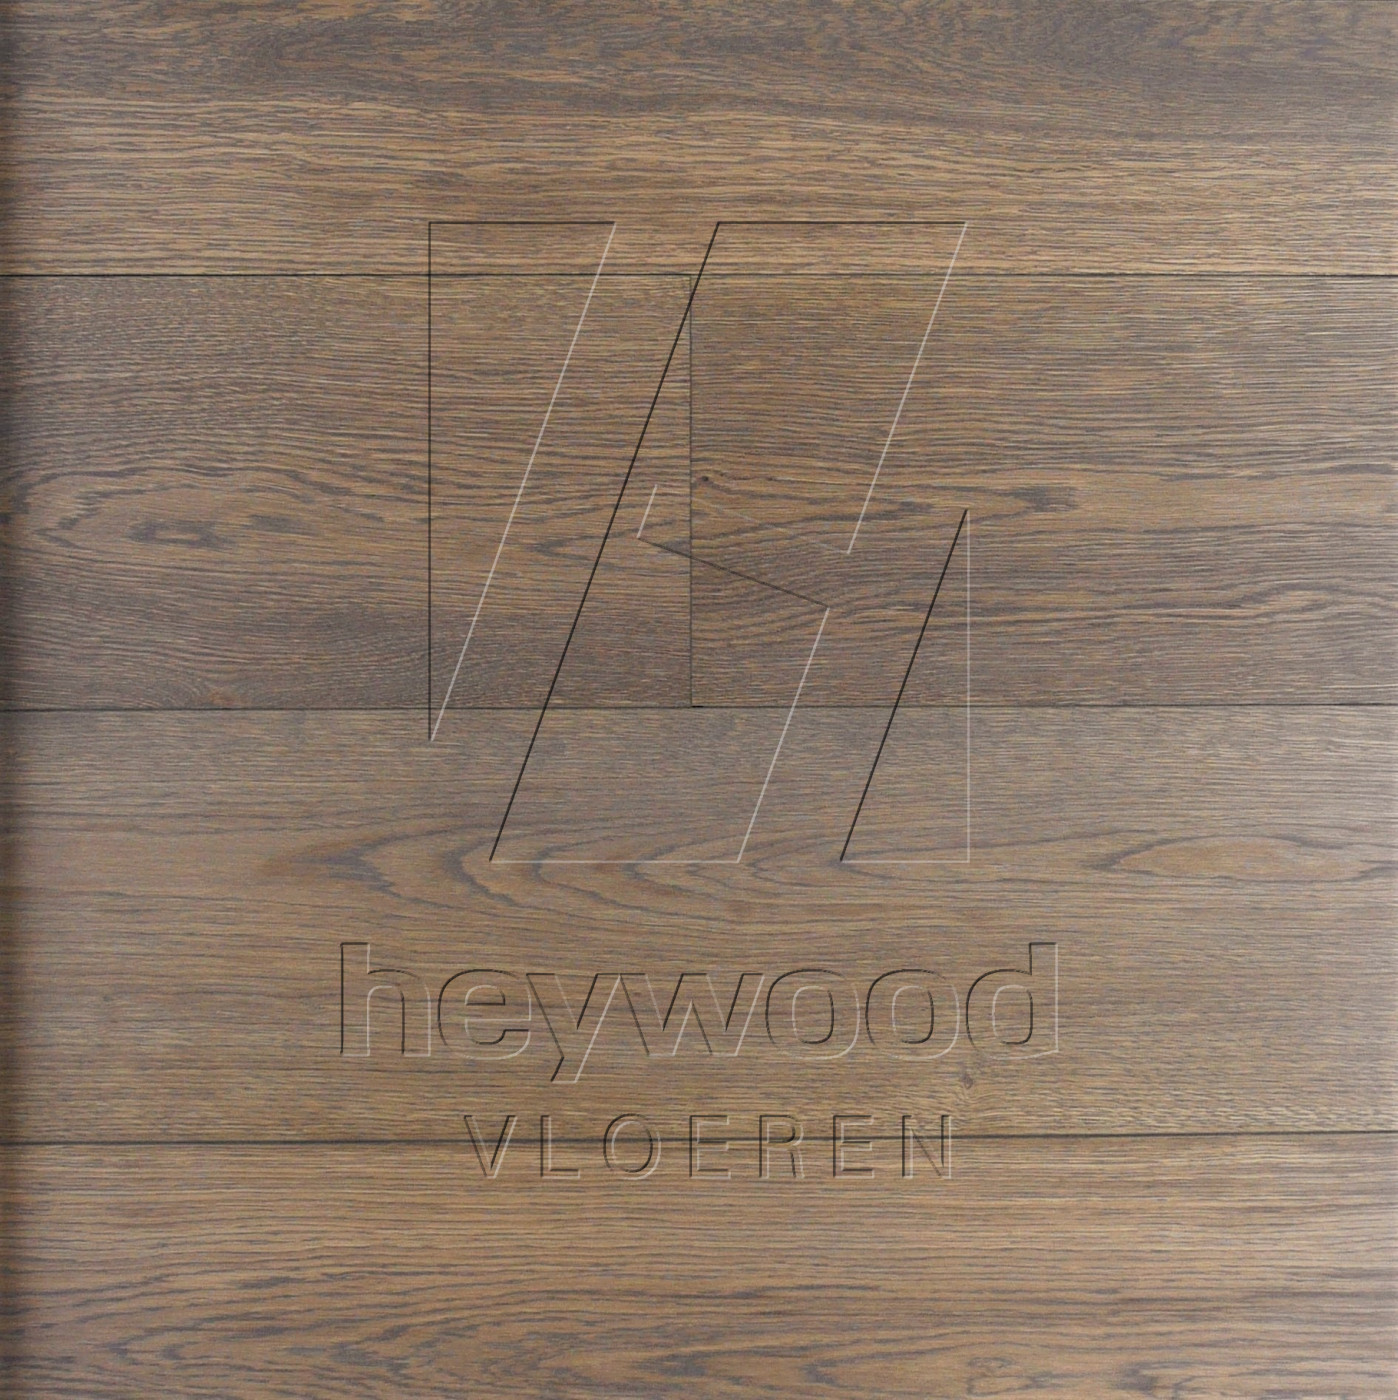 Plank Missouri in European Oak Elegance of Bespoke Wooden Floors